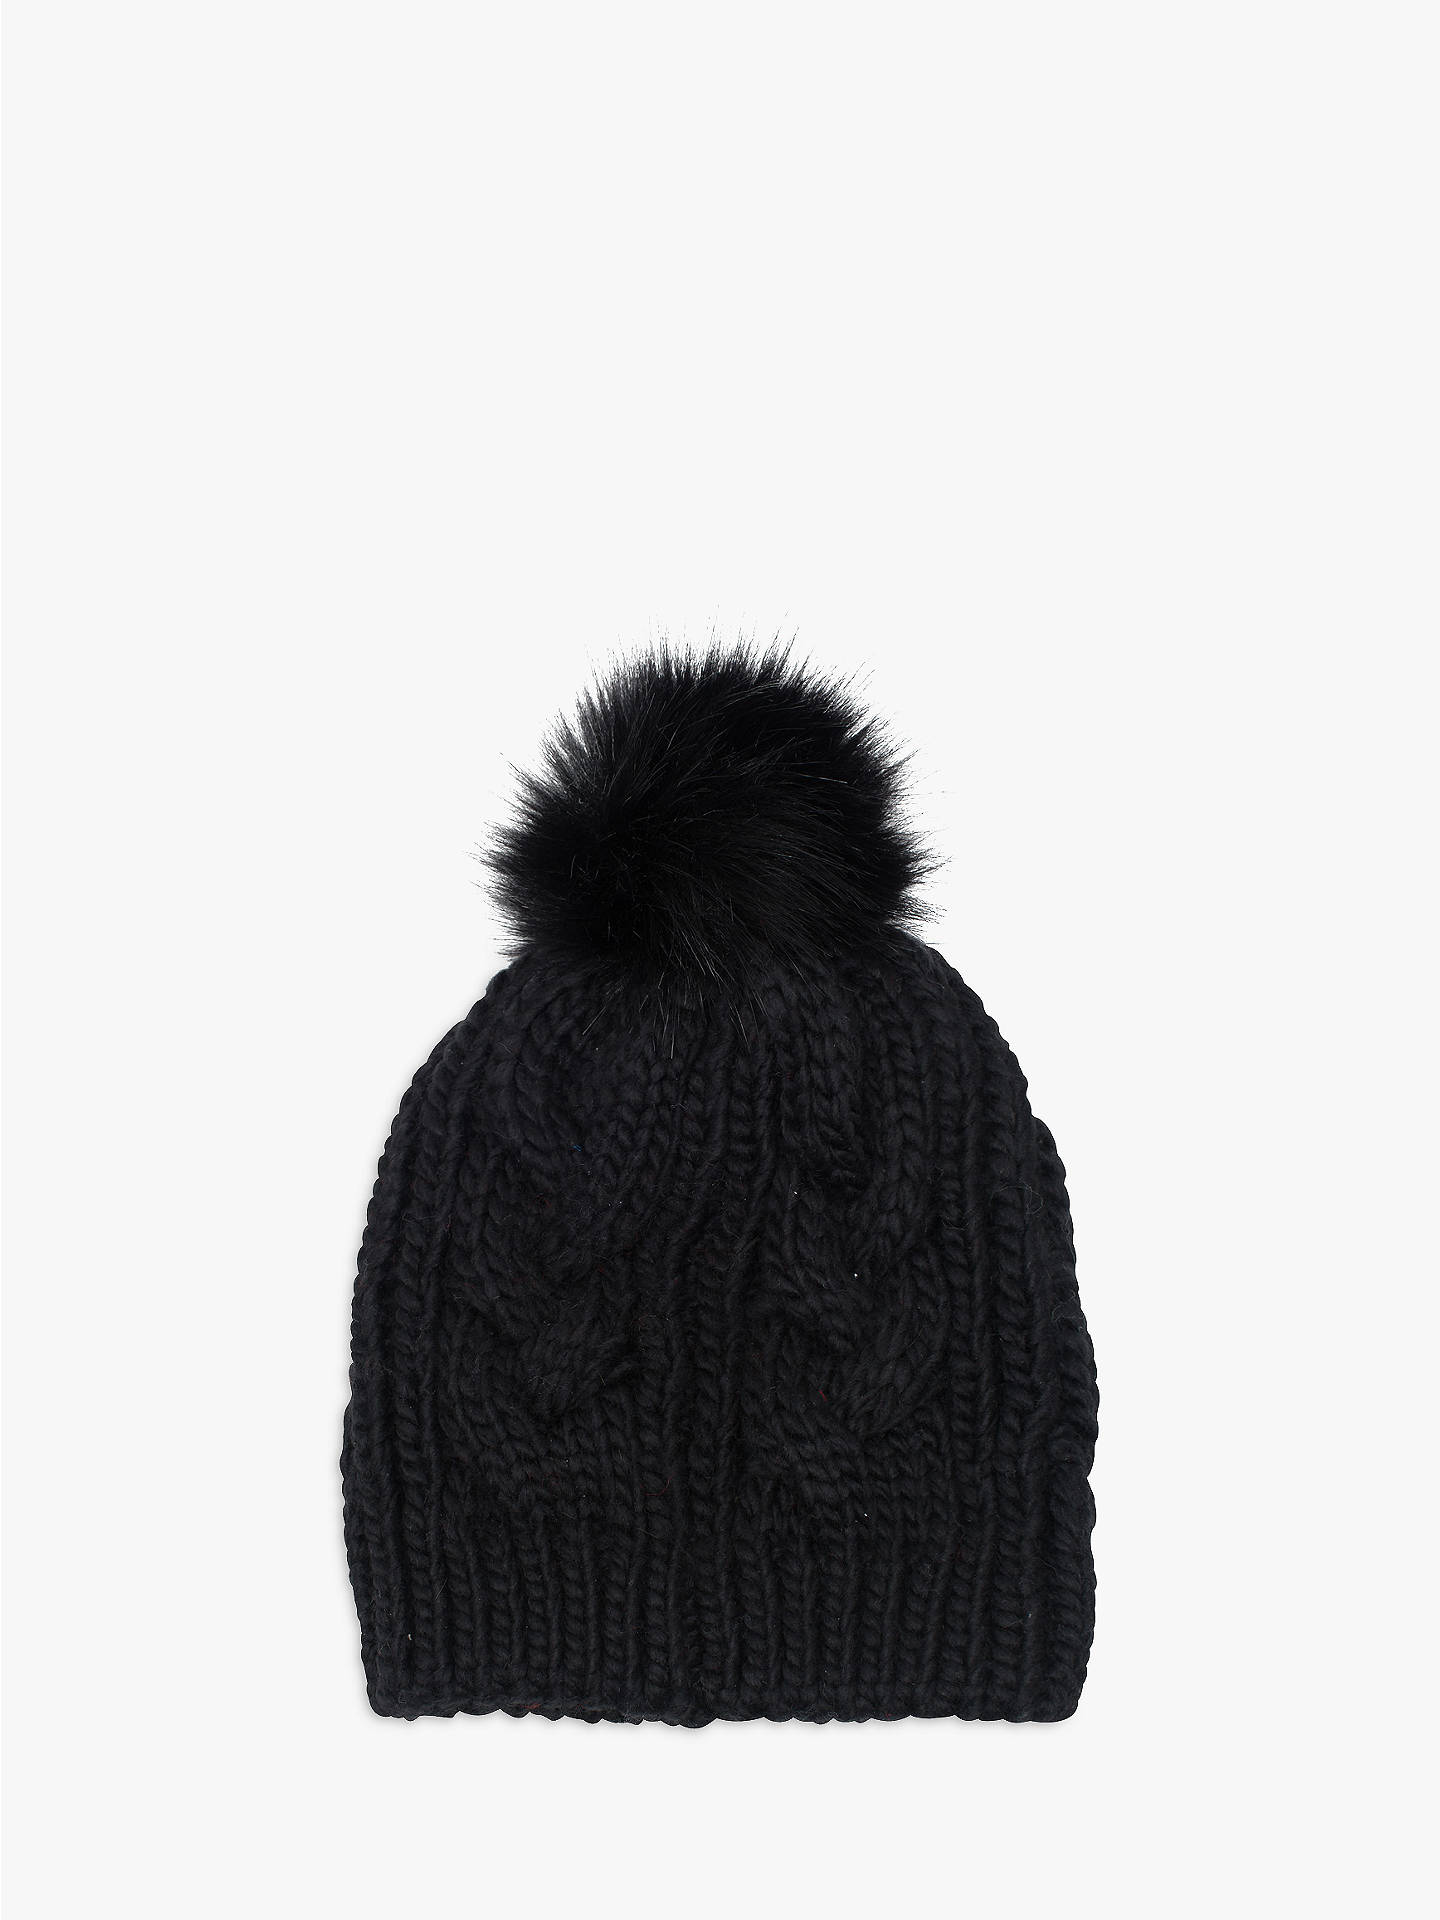 BuyFrench Connection Cable Knit Faux Fur Pom Pom Beanie Hat 6f2371a04c2